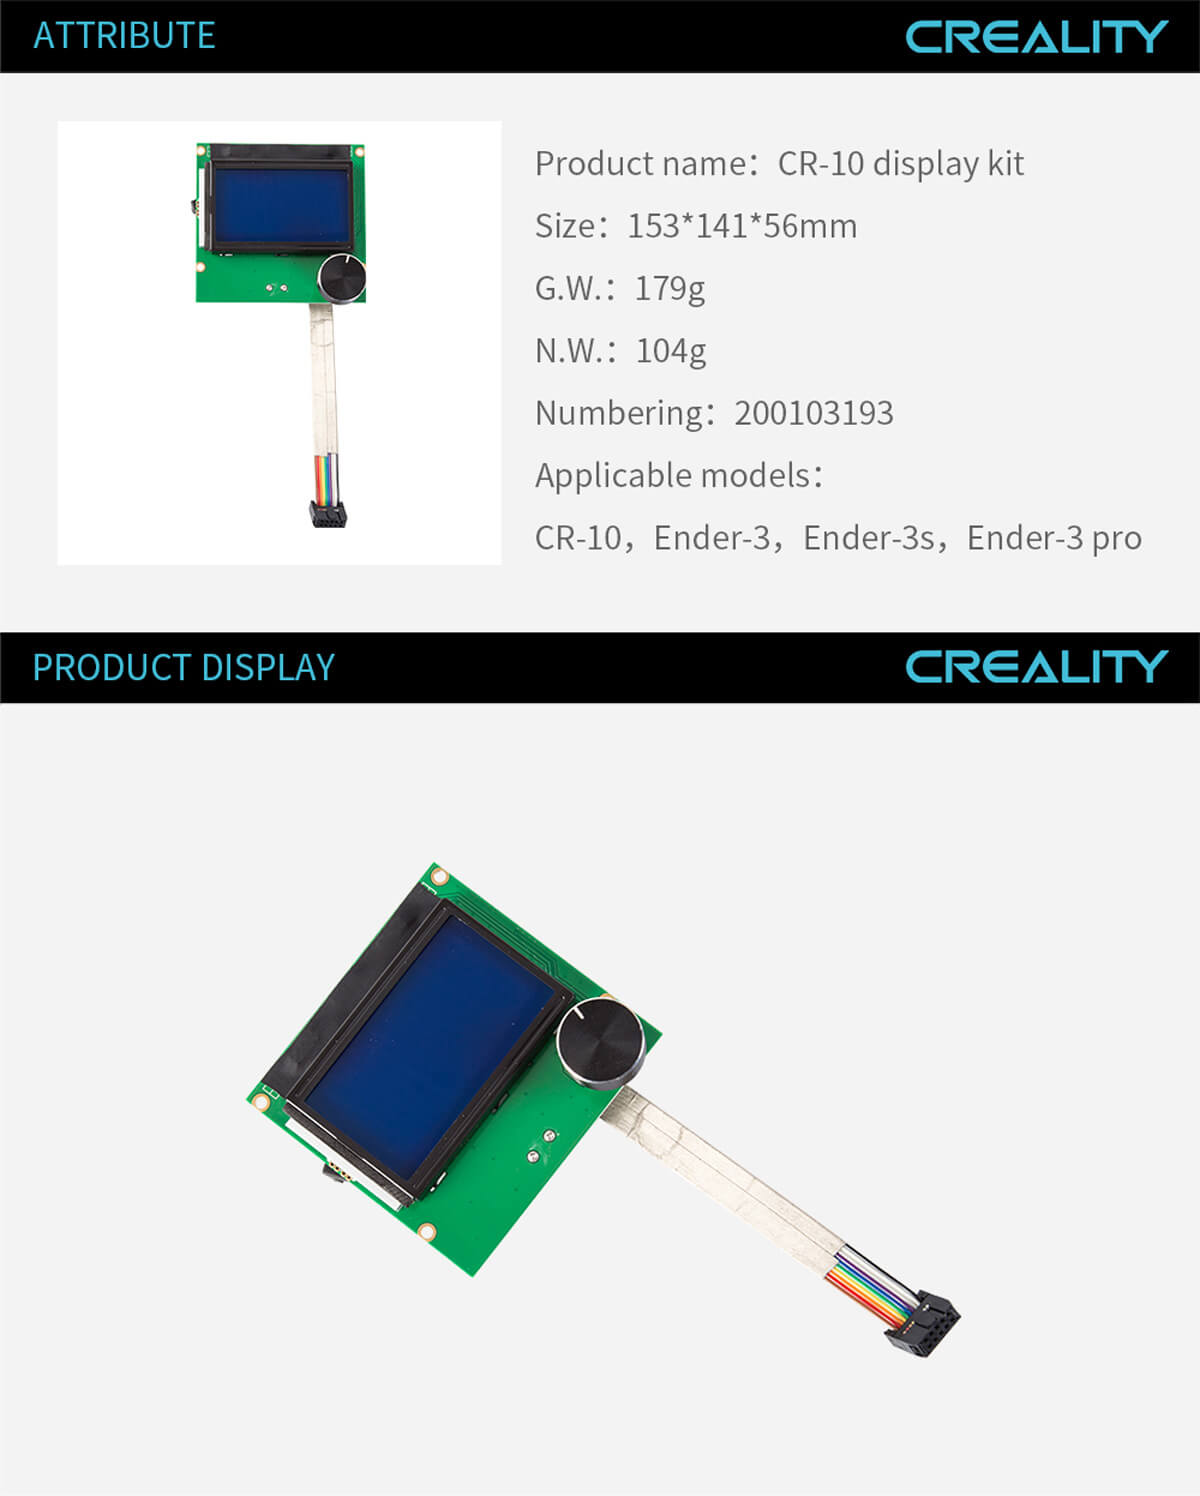 creality-3d-printer-CR-10-Display-Kit-11